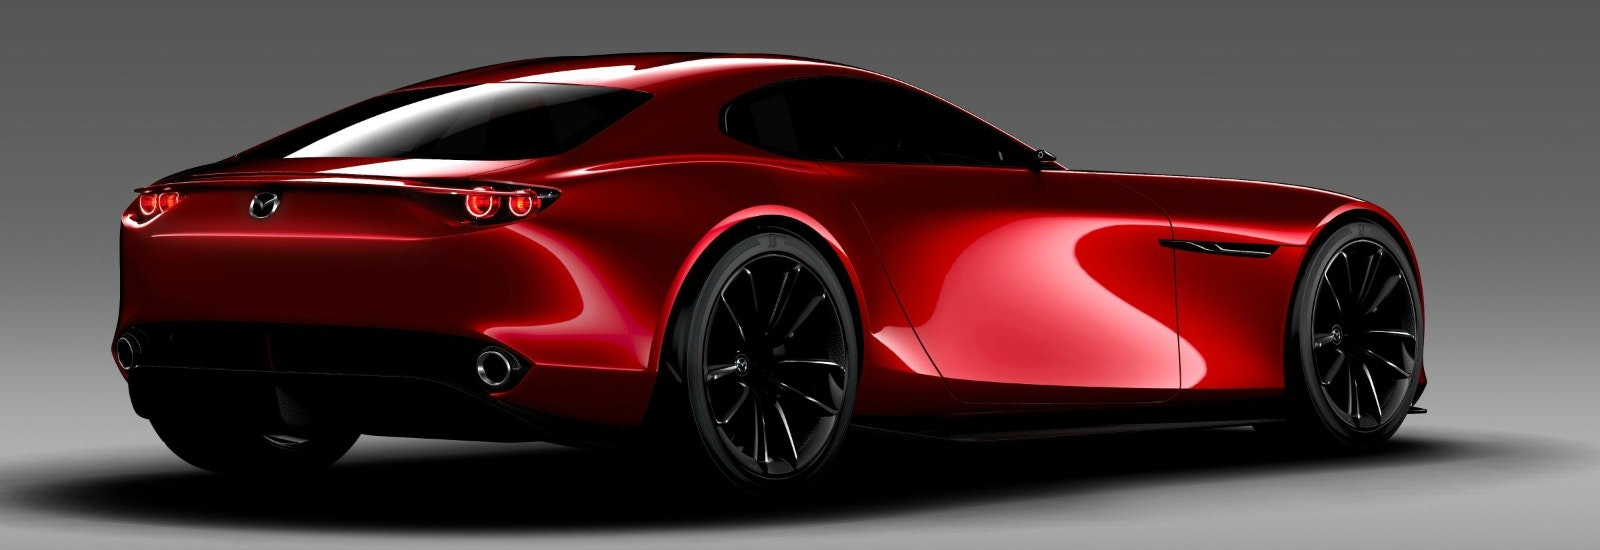 Mazda Rx Vision Rx 9 Price Specs And Release Date Carwow